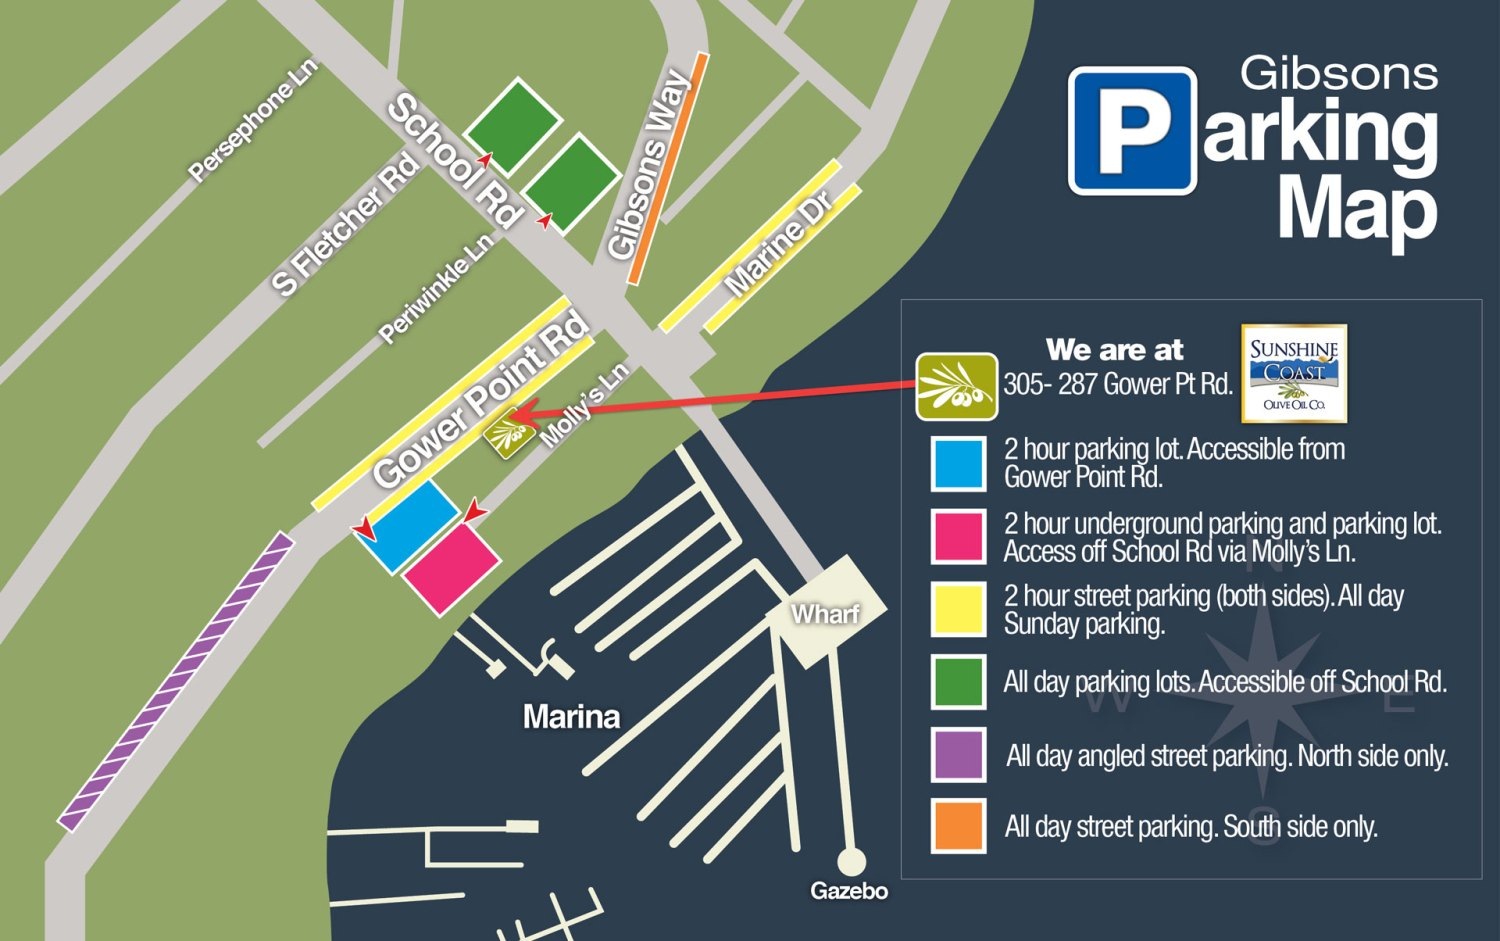 Gibson's_Parking_Map_